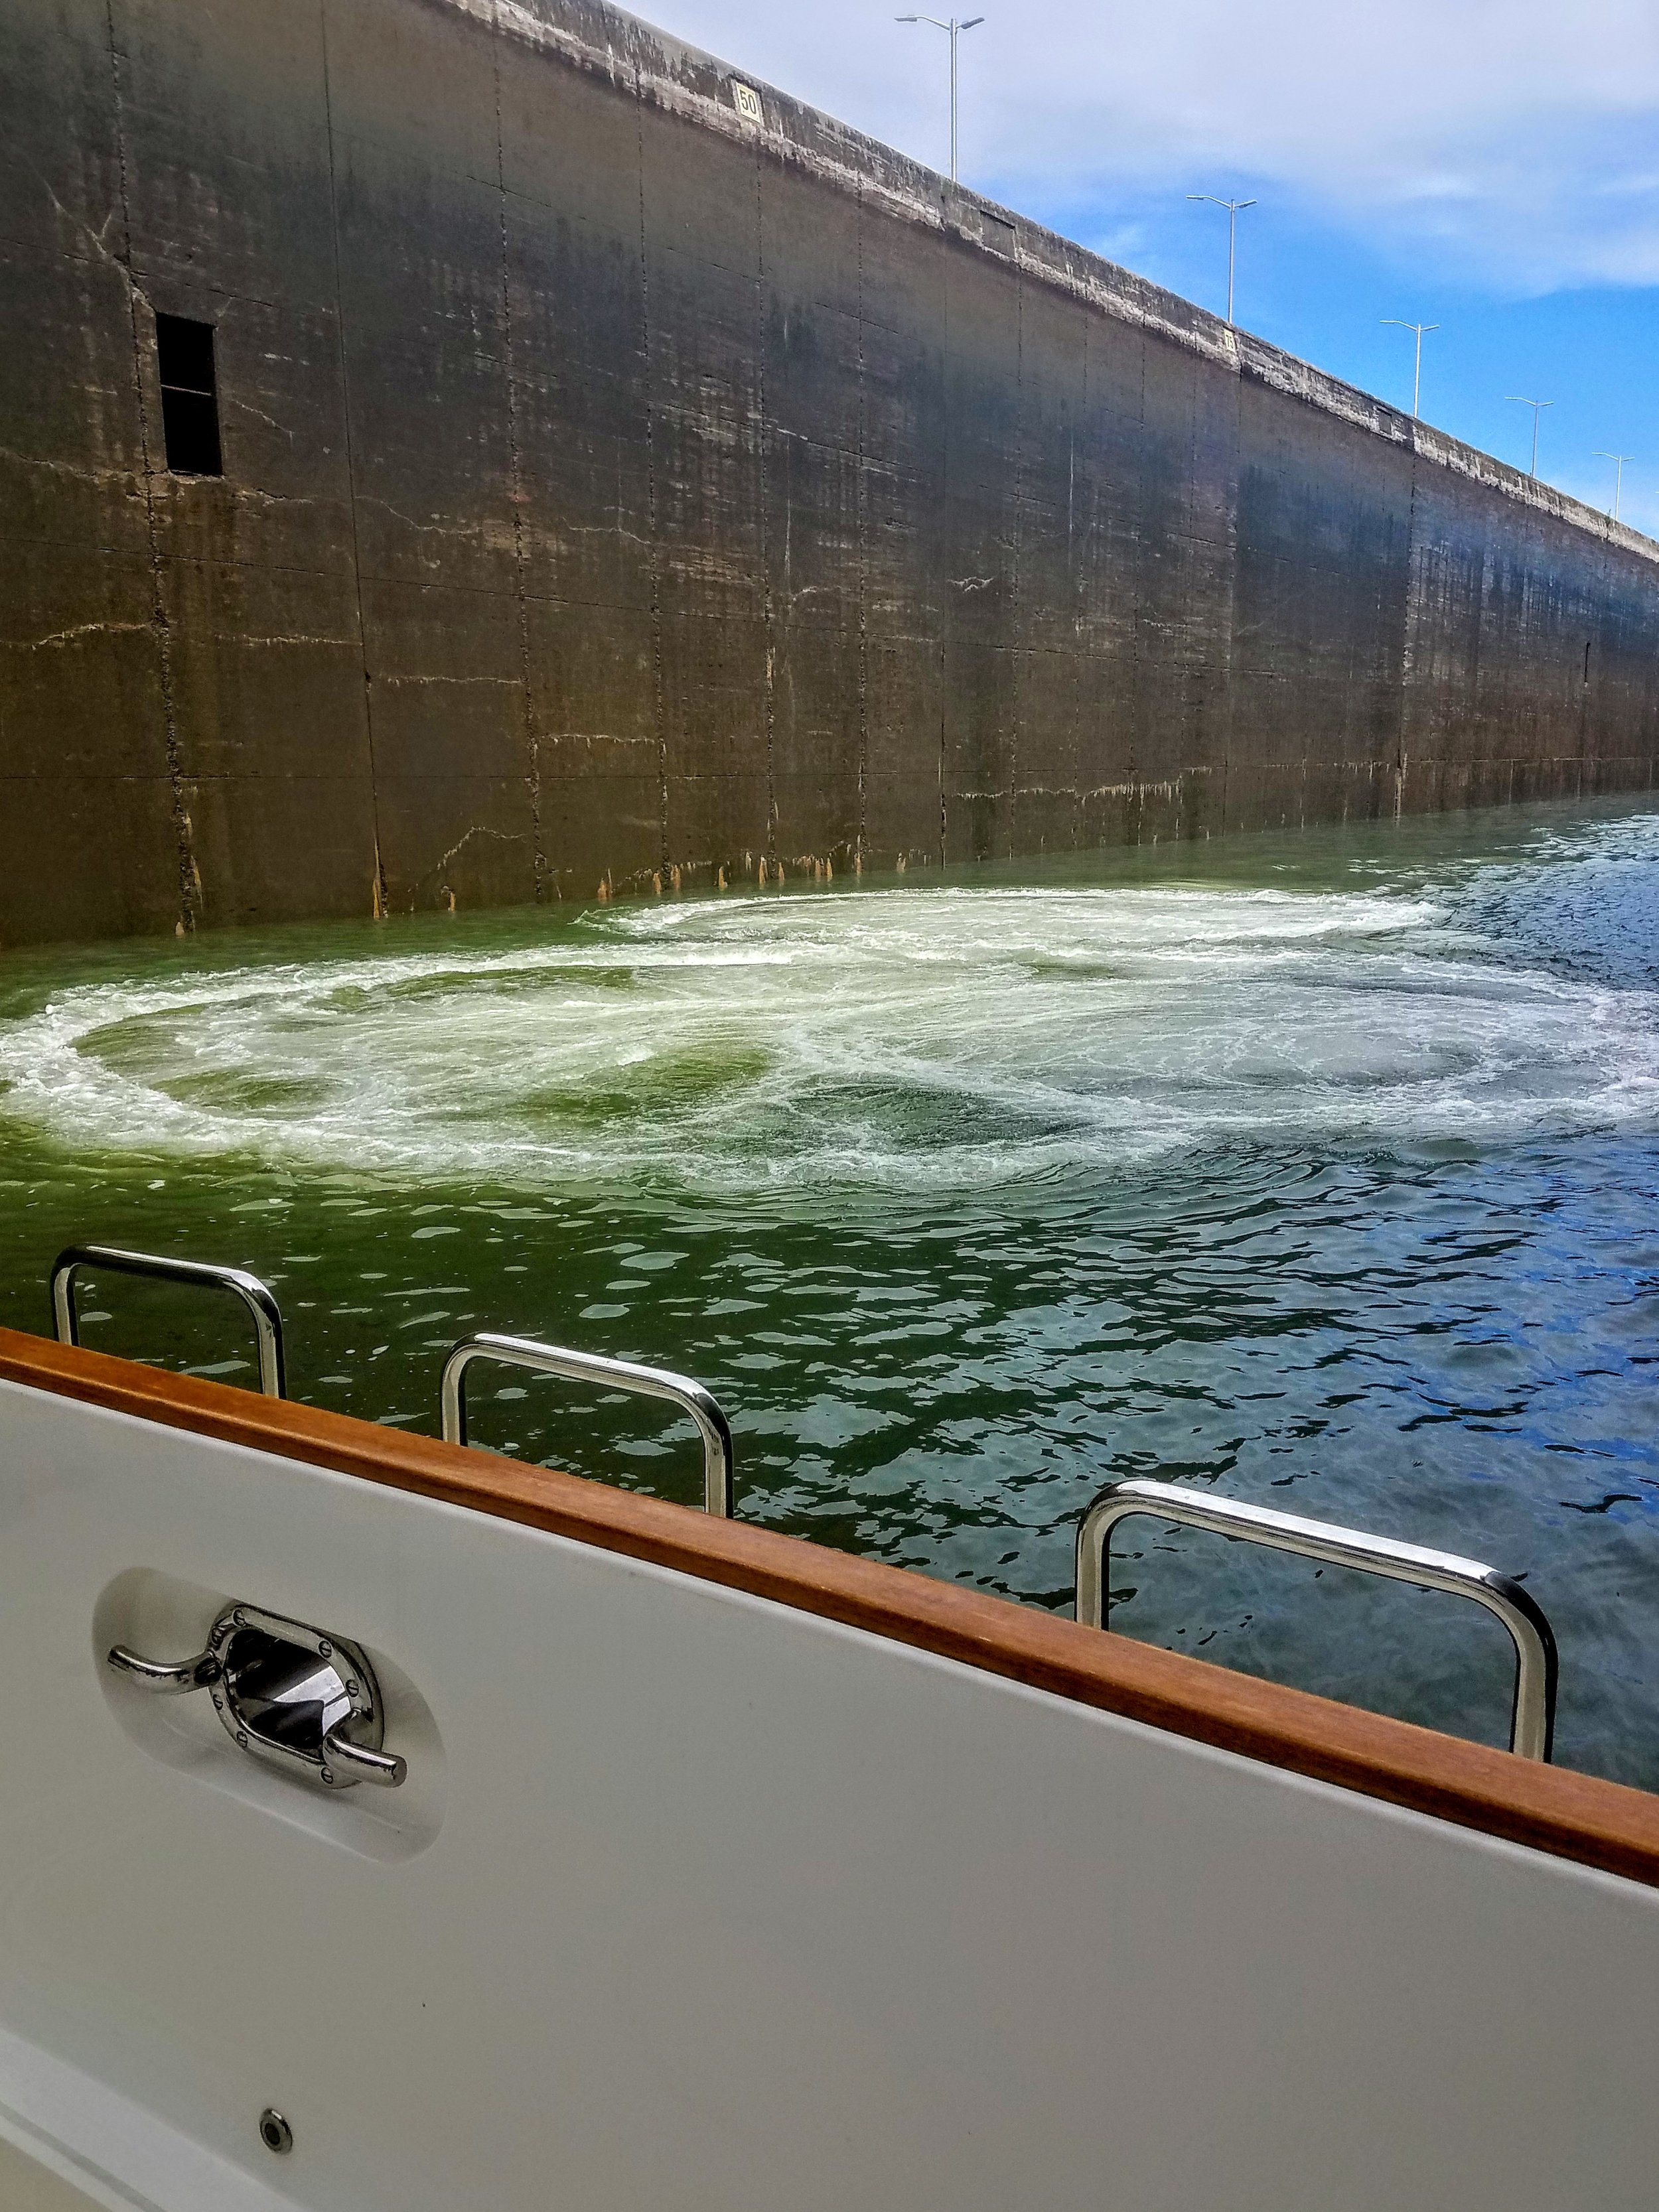 The water boils up from massive valves below the hull of the boat